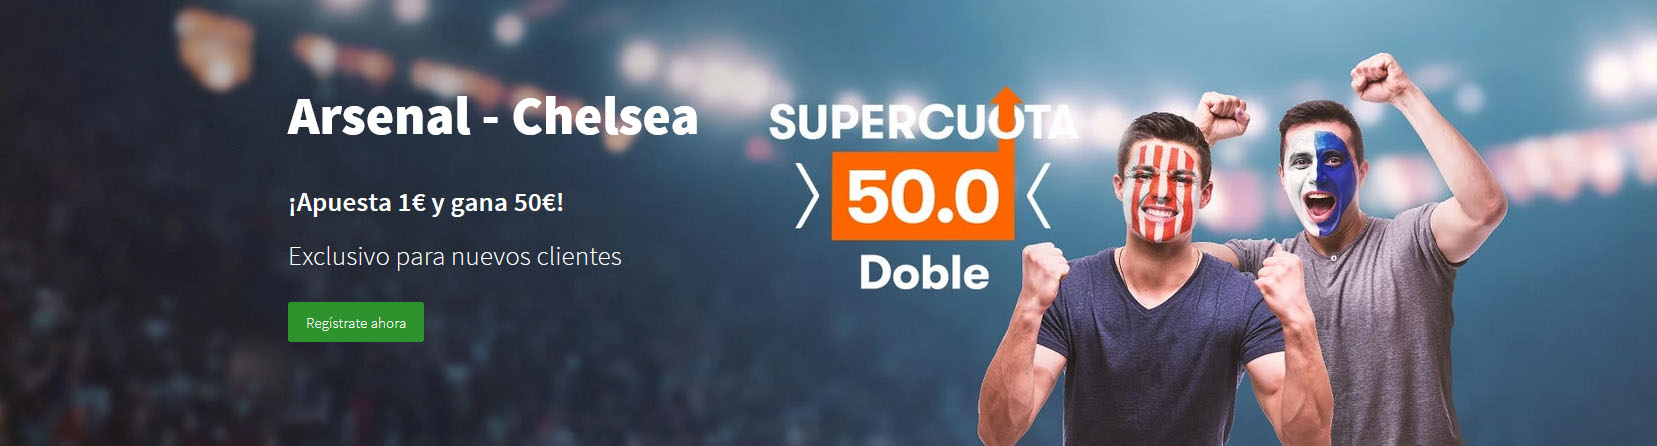 Arsenal vs Chelsea Supercuota 50 Betsson